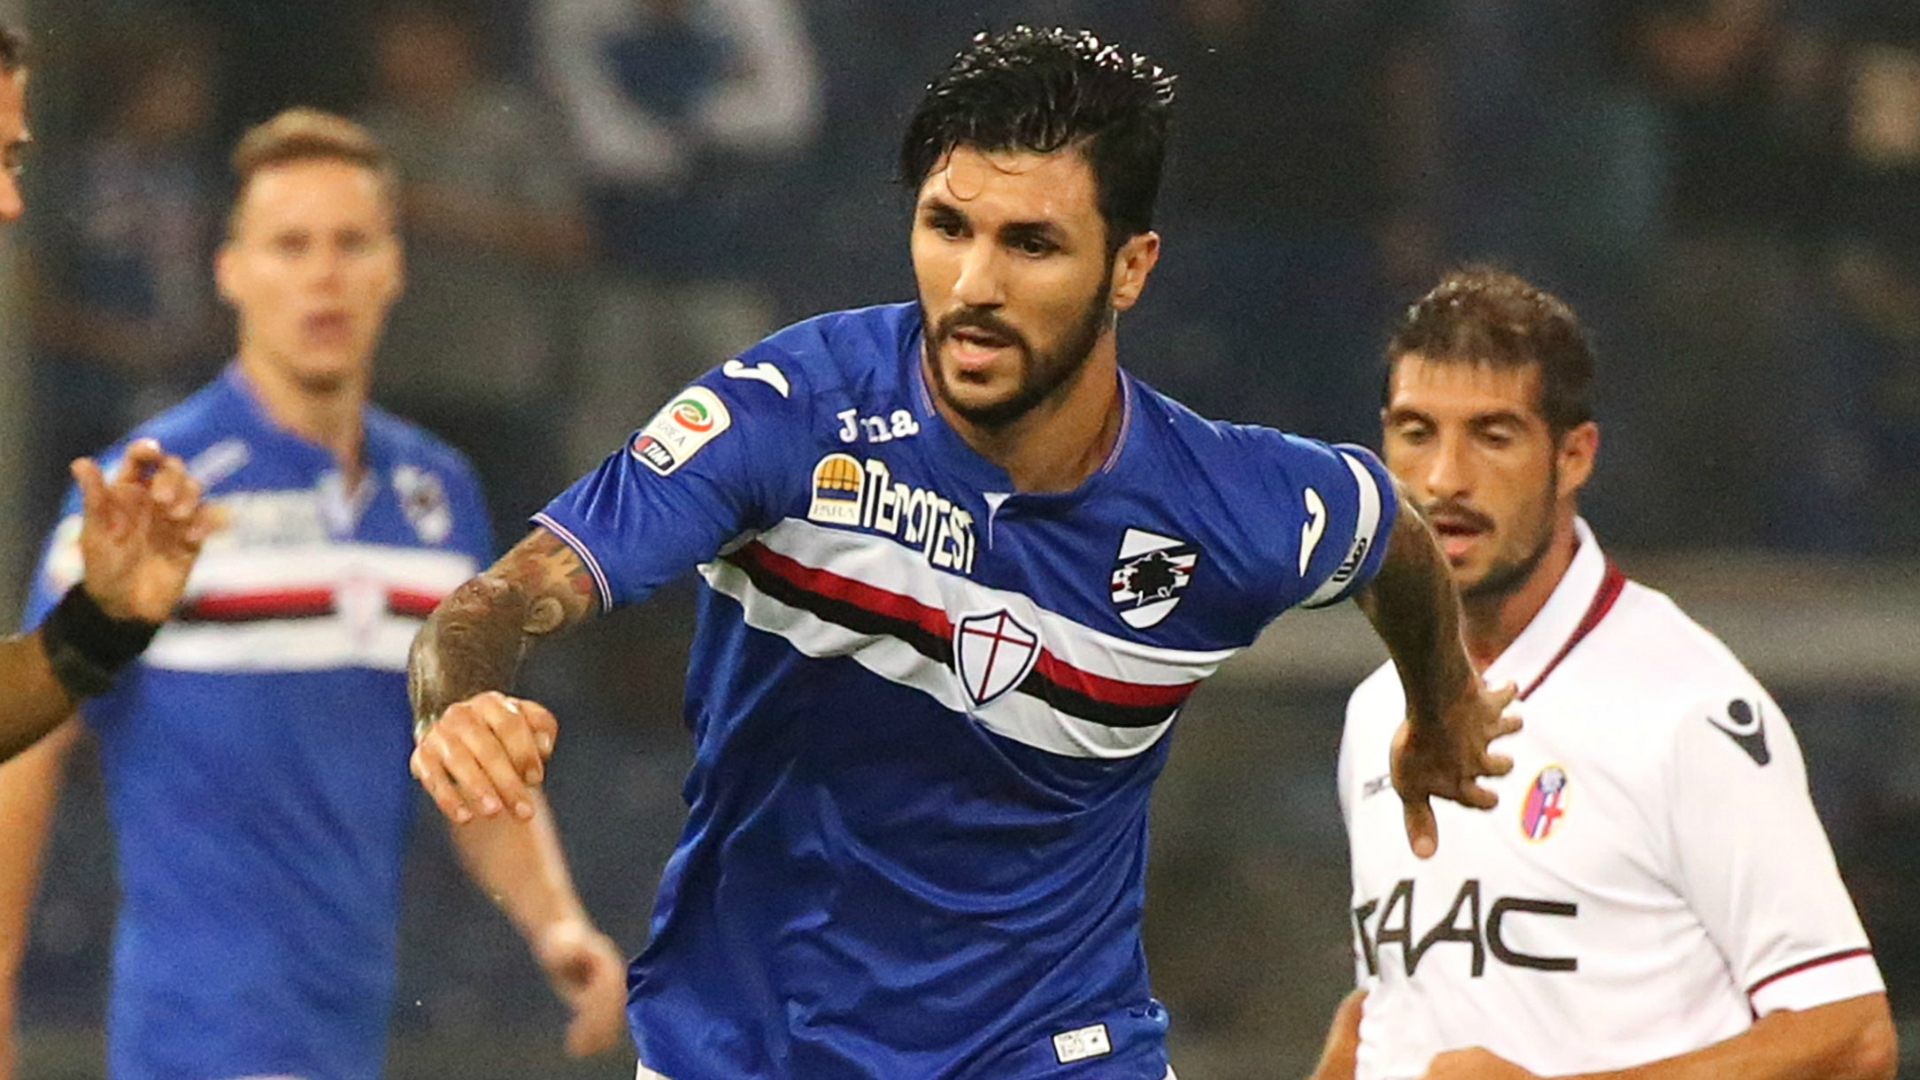 Video: Sampdoria vs Palermo